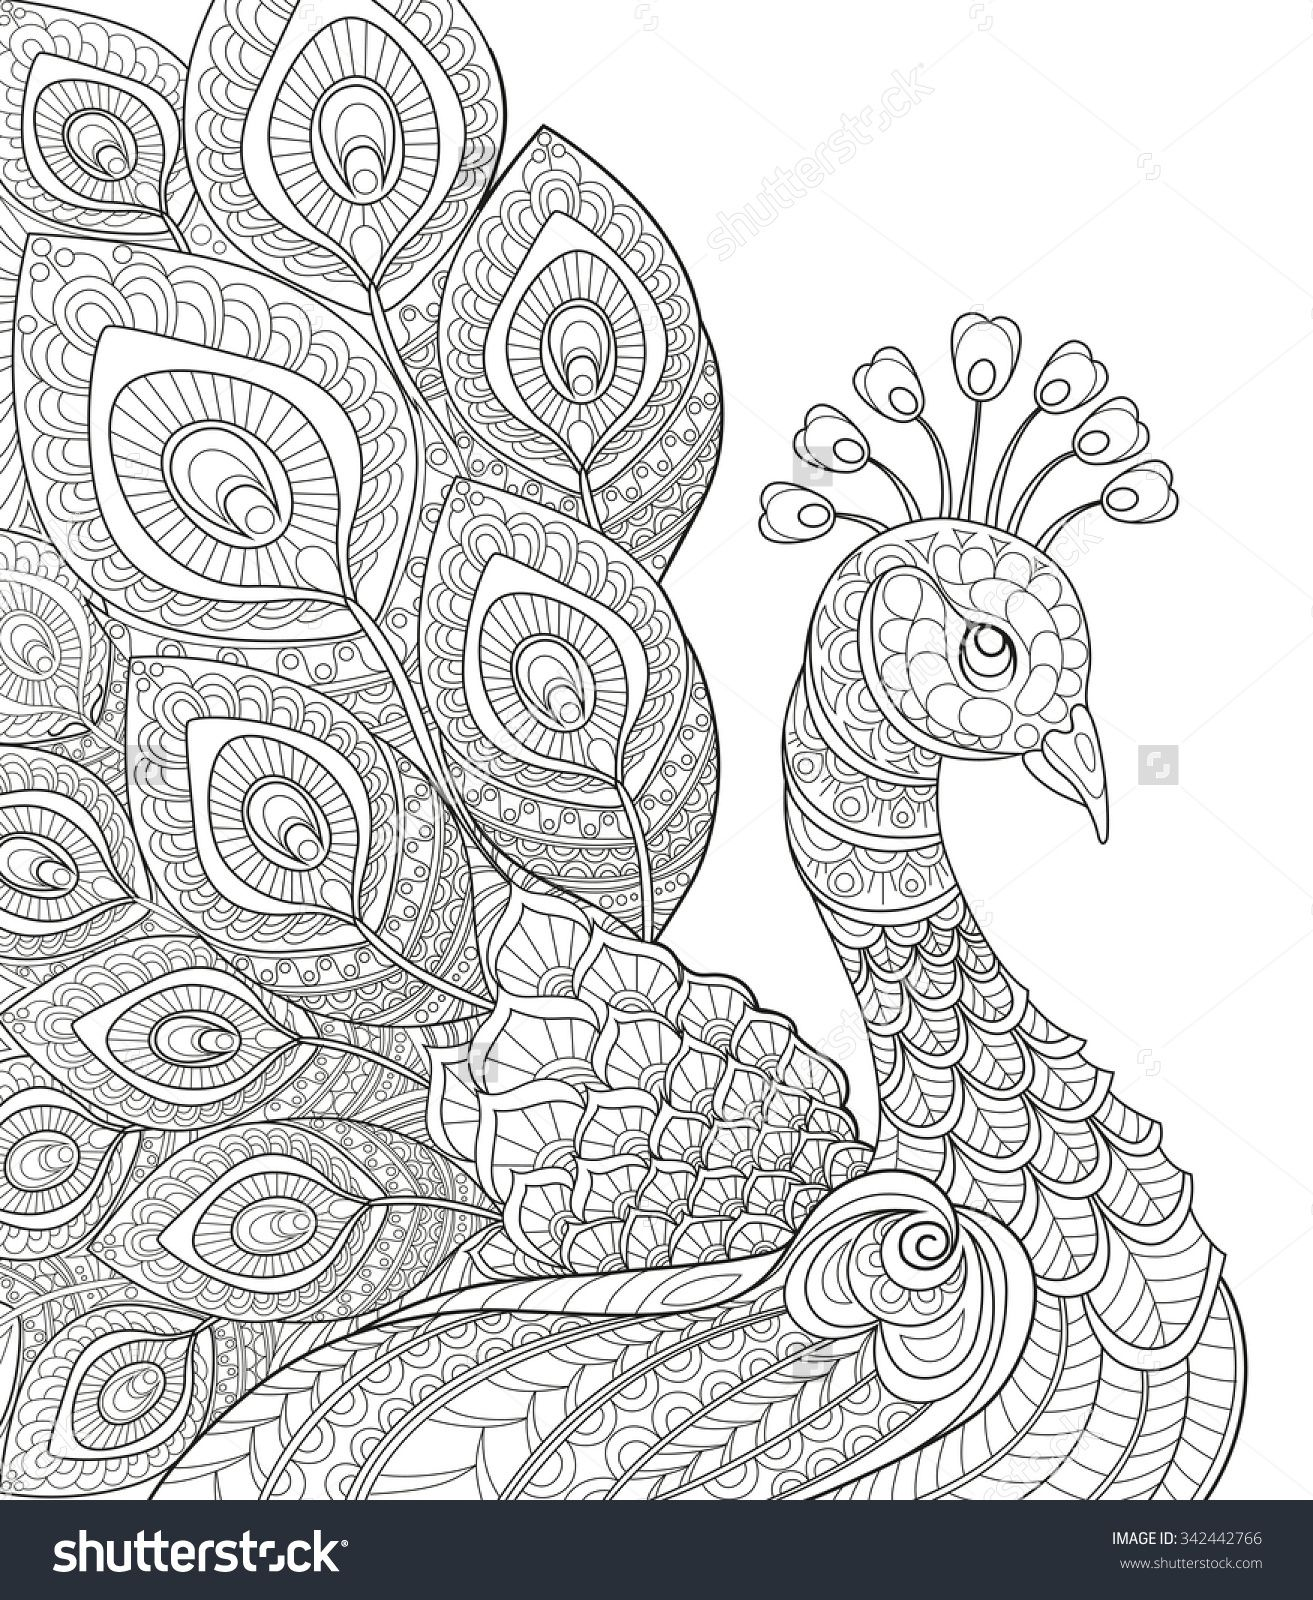 Free coloring pages of peacock feathers coloring everyday printable - Peacock Adult Antistress Coloring Page Black And White Hand Drawn Doodle For Coloring Book